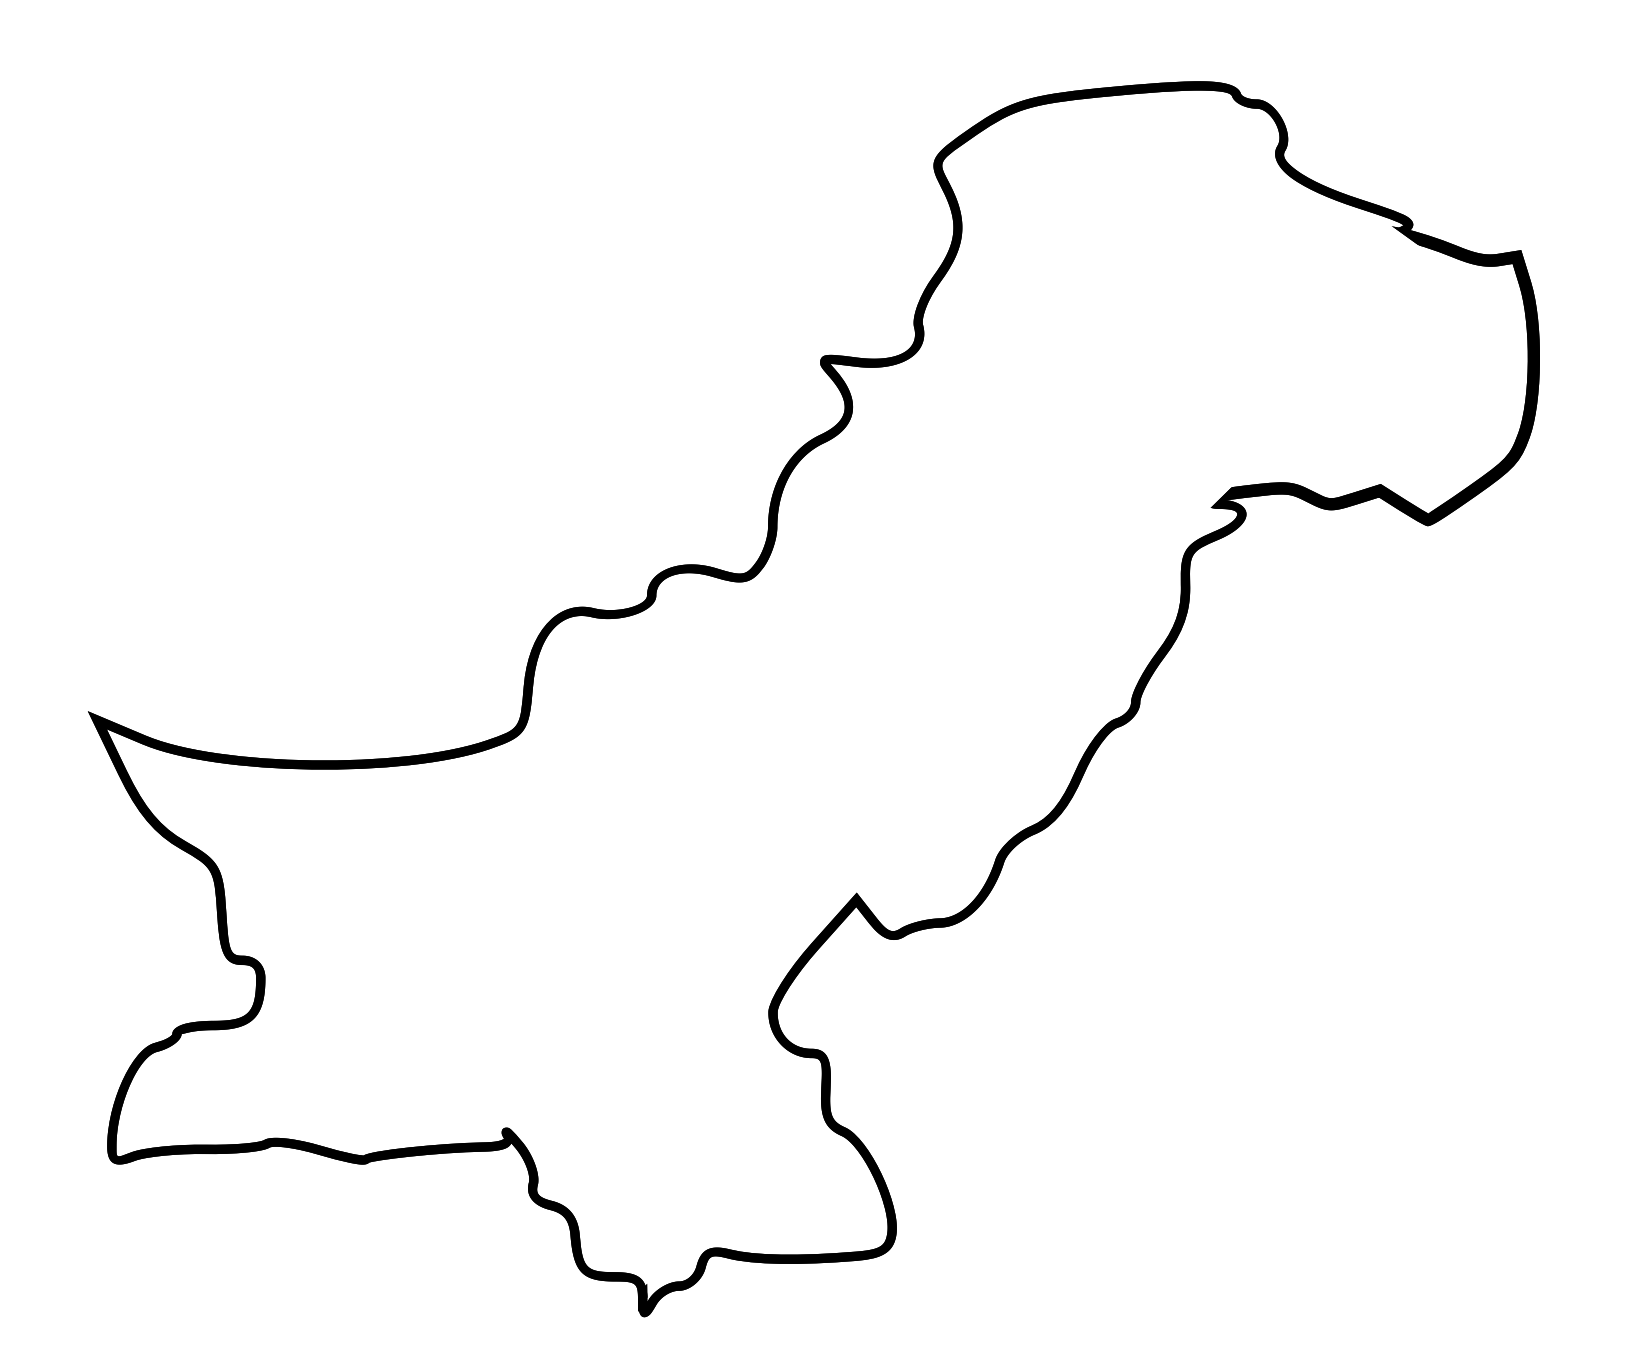 pakistan outline Find the perfect pakistan map outline stock photo huge collection, amazing choice, 100+ million high quality, affordable rf and rm images no need to register, buy now.